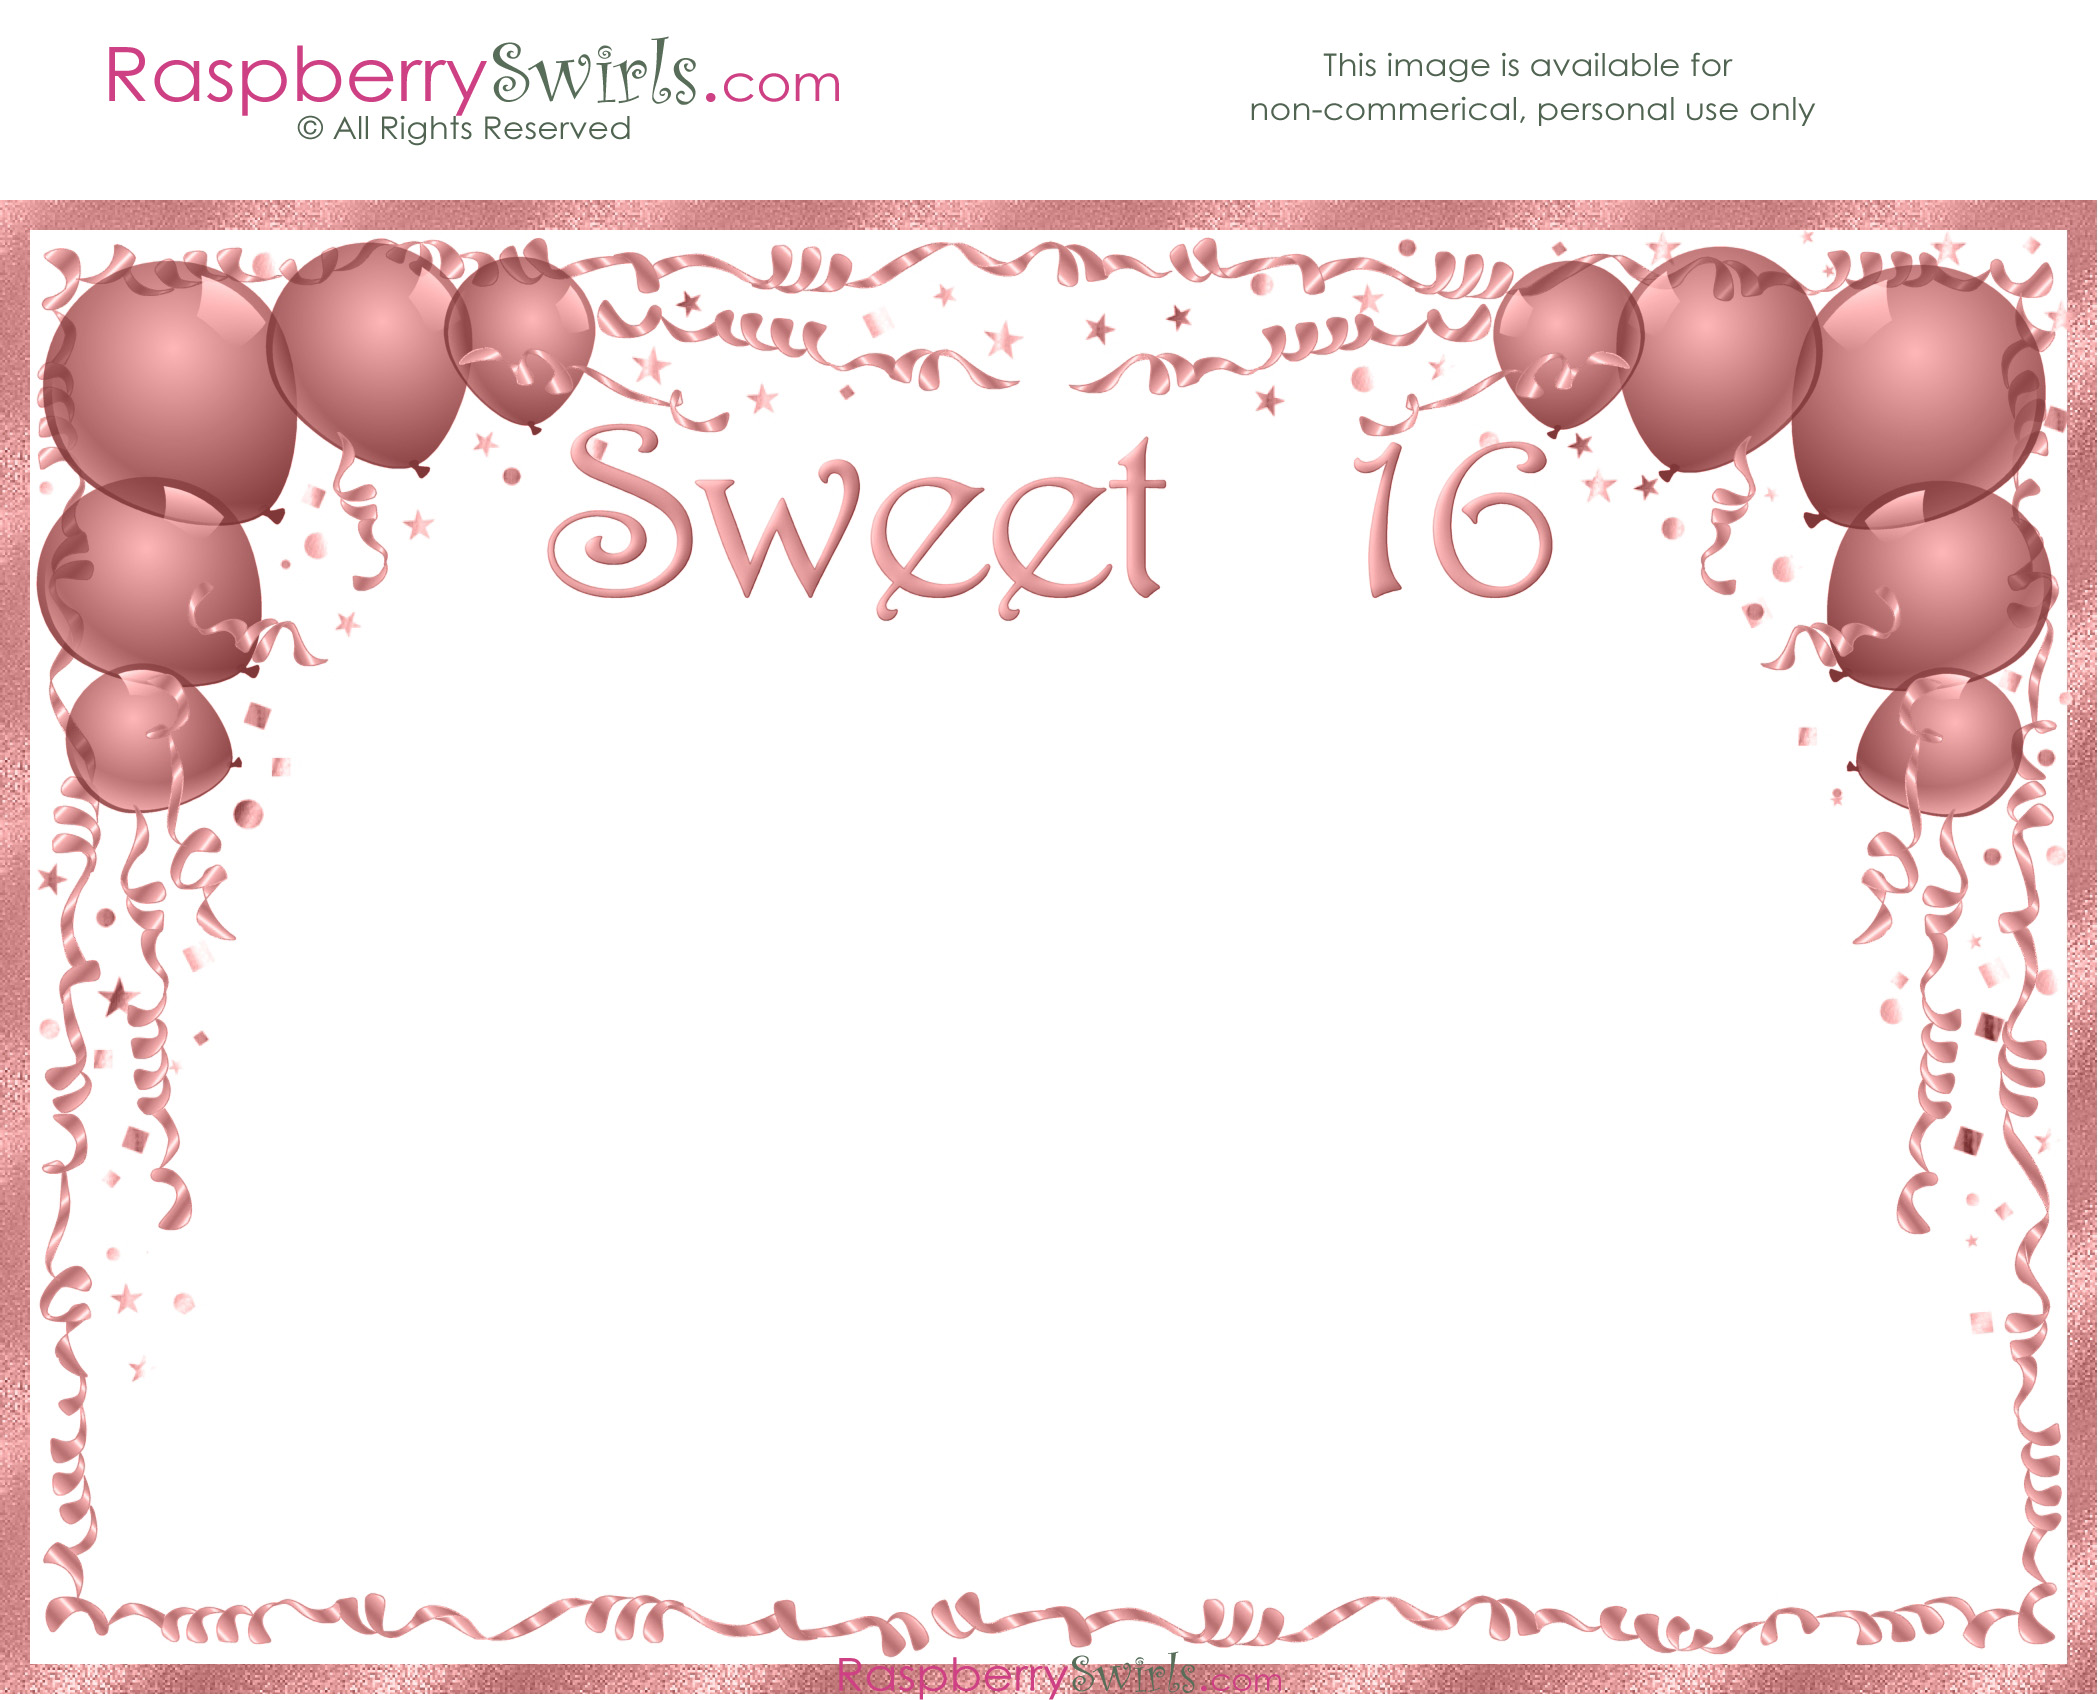 free sweet 16 printable candy wrappers invitations and more raspberry swirls